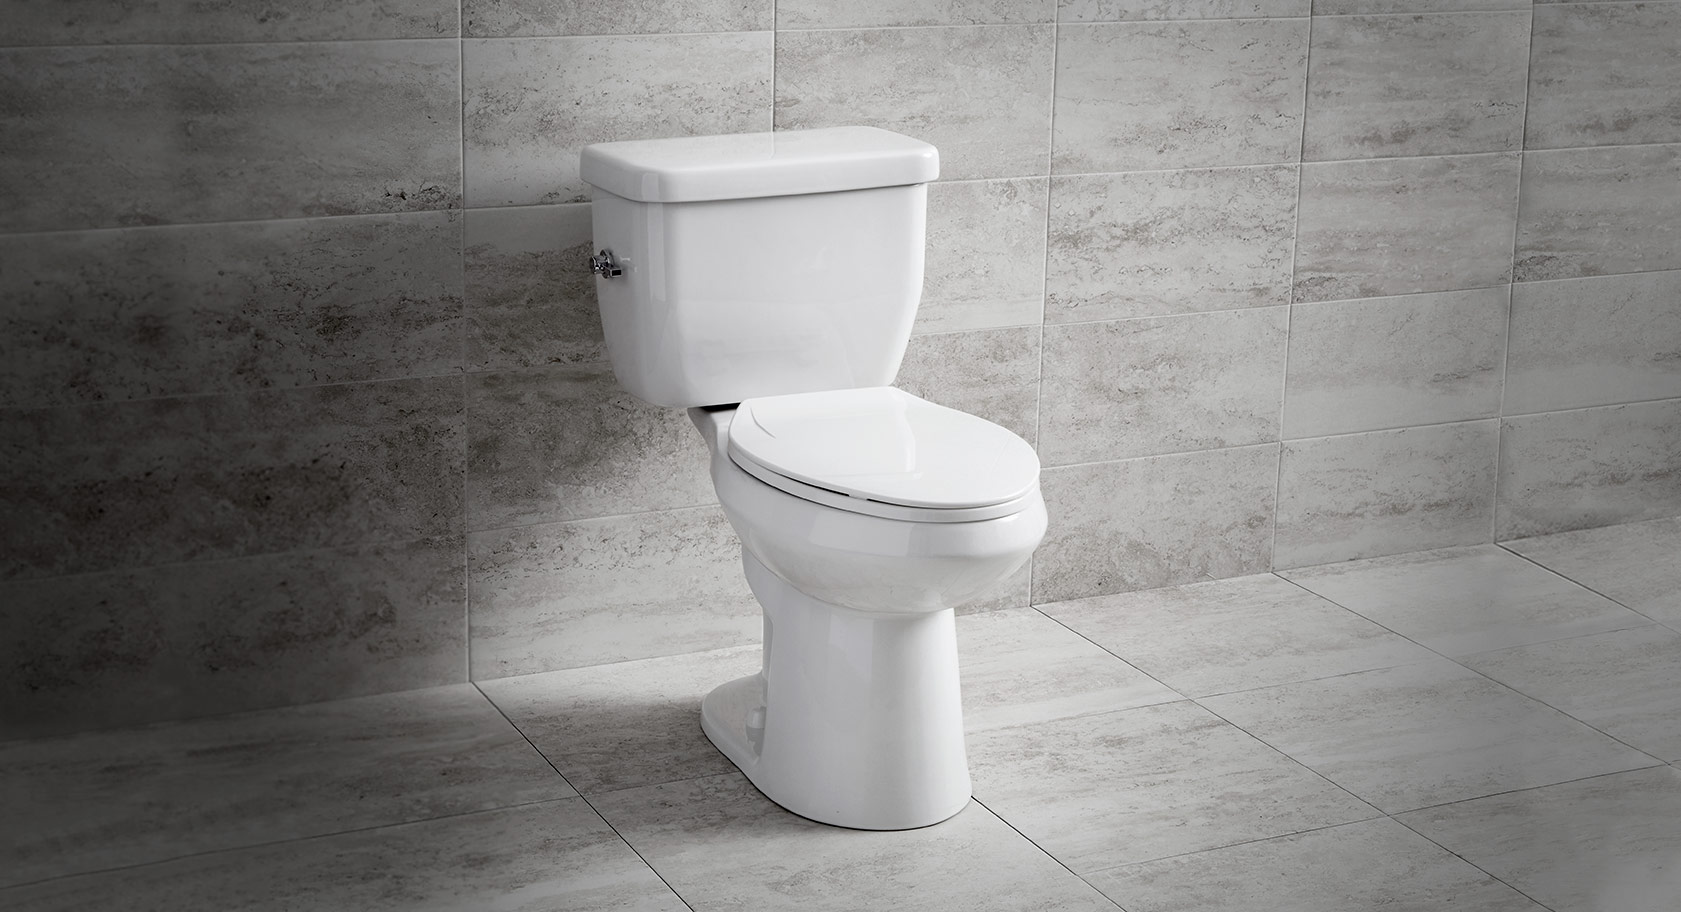 water saver toilet flapper. They Are Maintenance Free  Eliminating The Need To Replace Flappers Chains And Levers No Double Flushing Needed One Flush Will Thoroughly Empty Bowl EcoLogic Technology Niagara Conservation